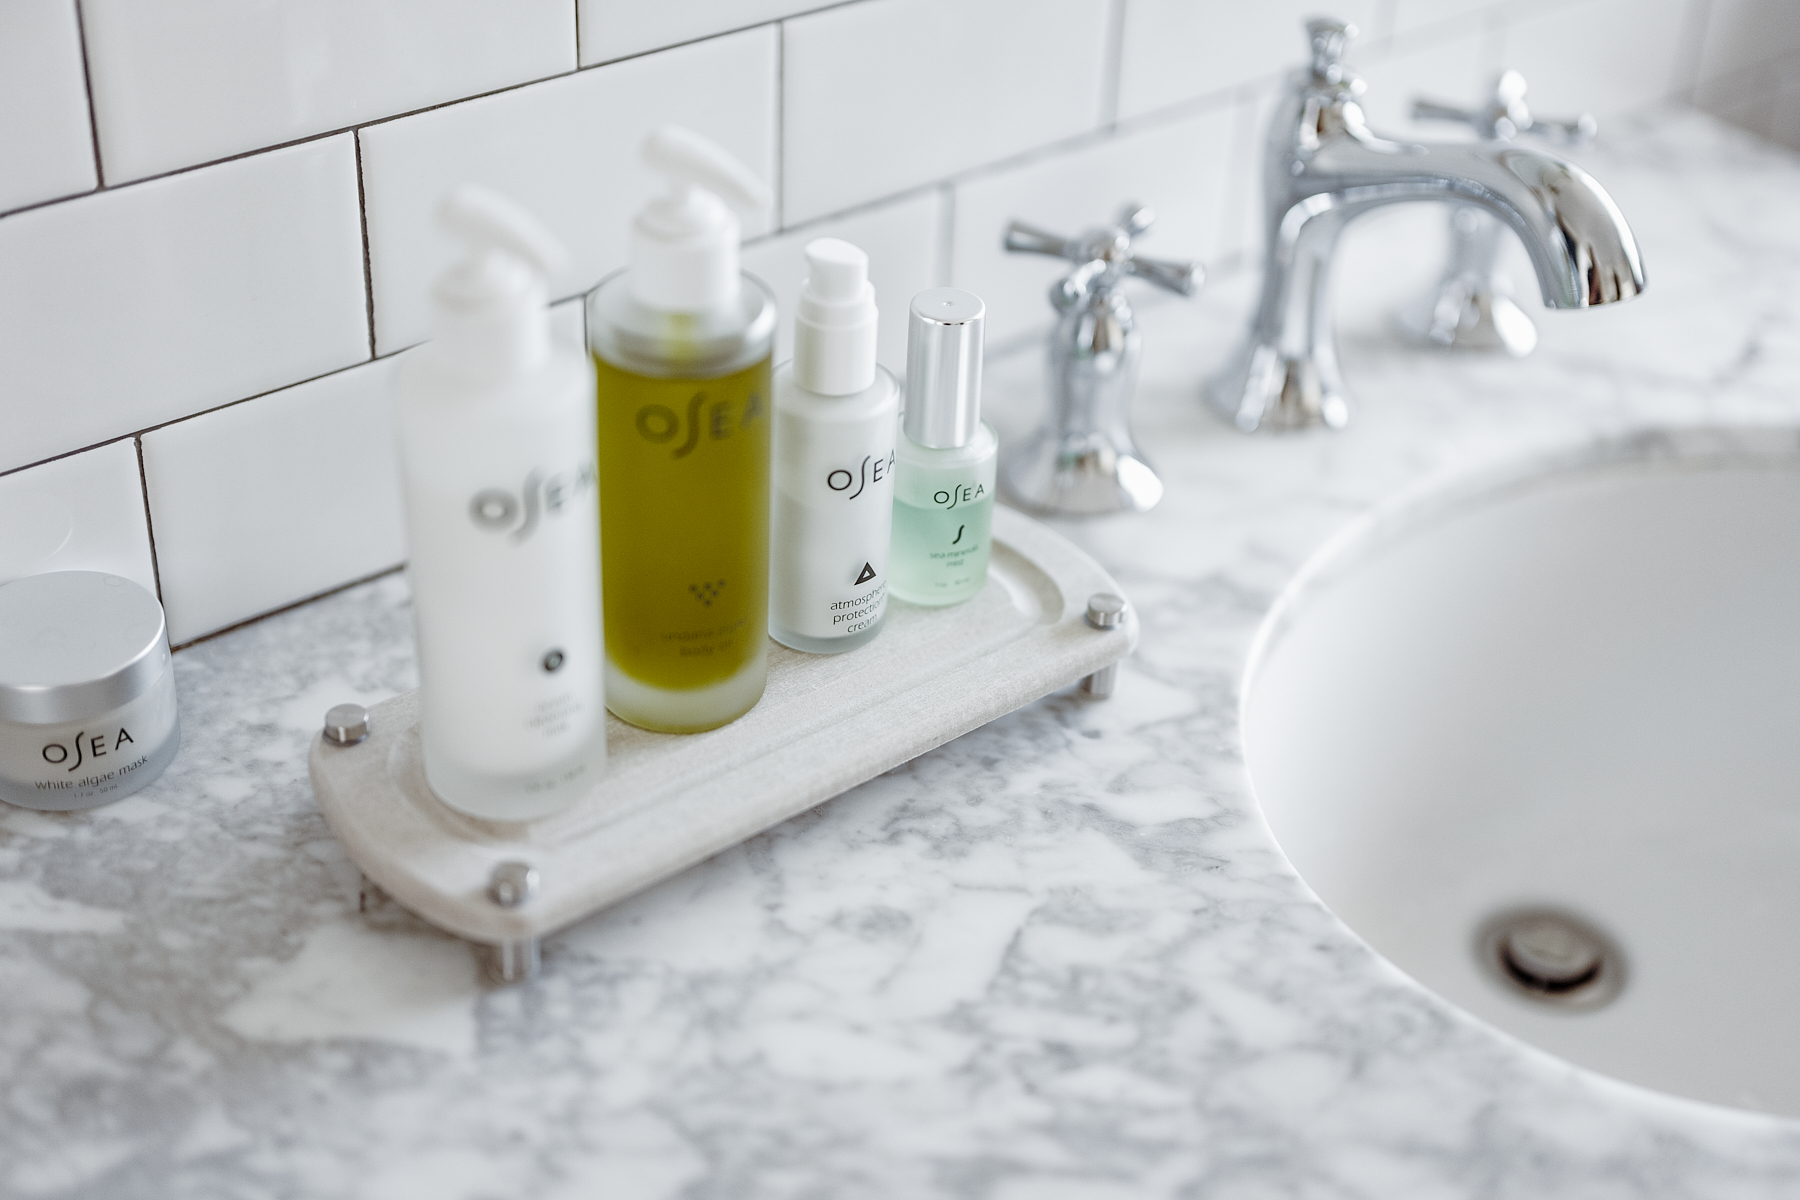 bathroom skin care products on a sink cady